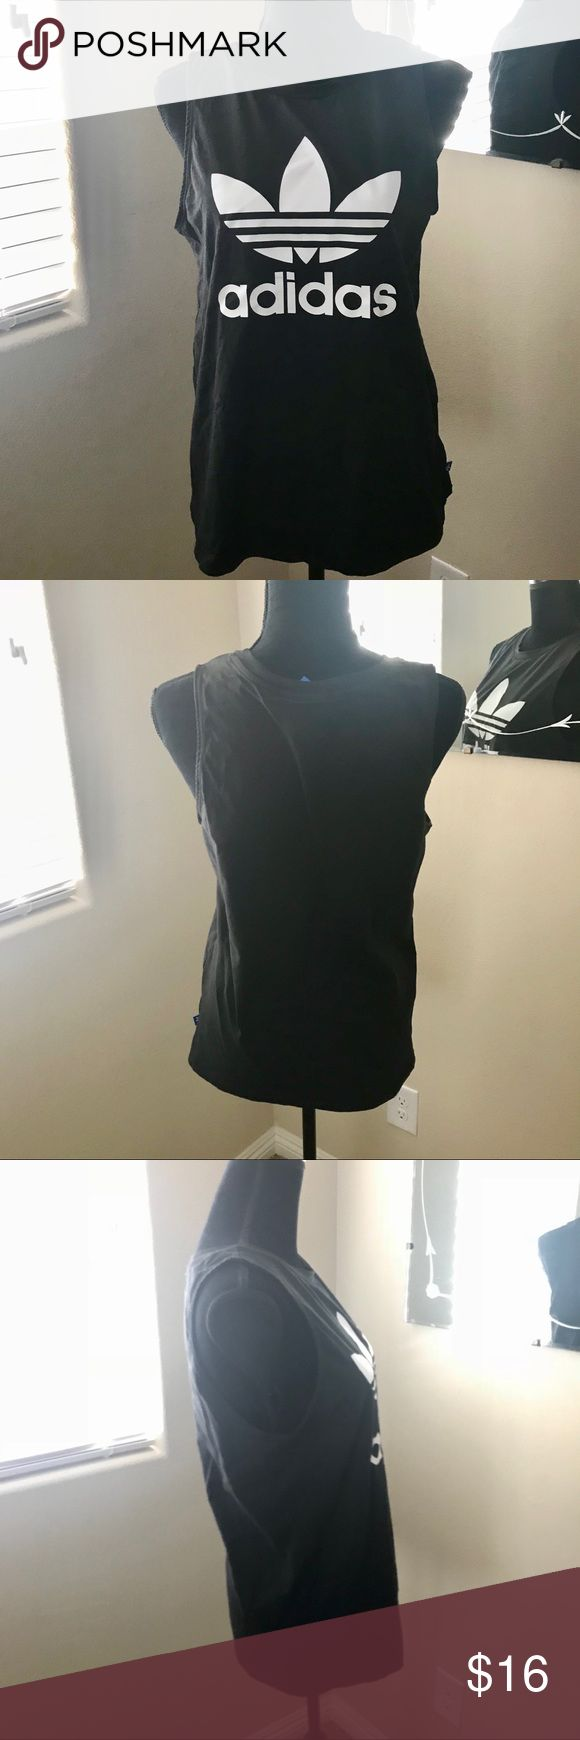 Adidas Tank Top Women's Size Small - Black Lightly Used, still in overall good condition, may show slight signs of wear.  ✅Open To Reasonable Offers  💢No Trades  All Items Come From A  Smoke & Pet Free Home‼️  Please refer to pics📷  Any Questions Just Ask 😁  ⚠️Please check out my other listings  THANK YOU⚠️ adidas Tops Tank Tops